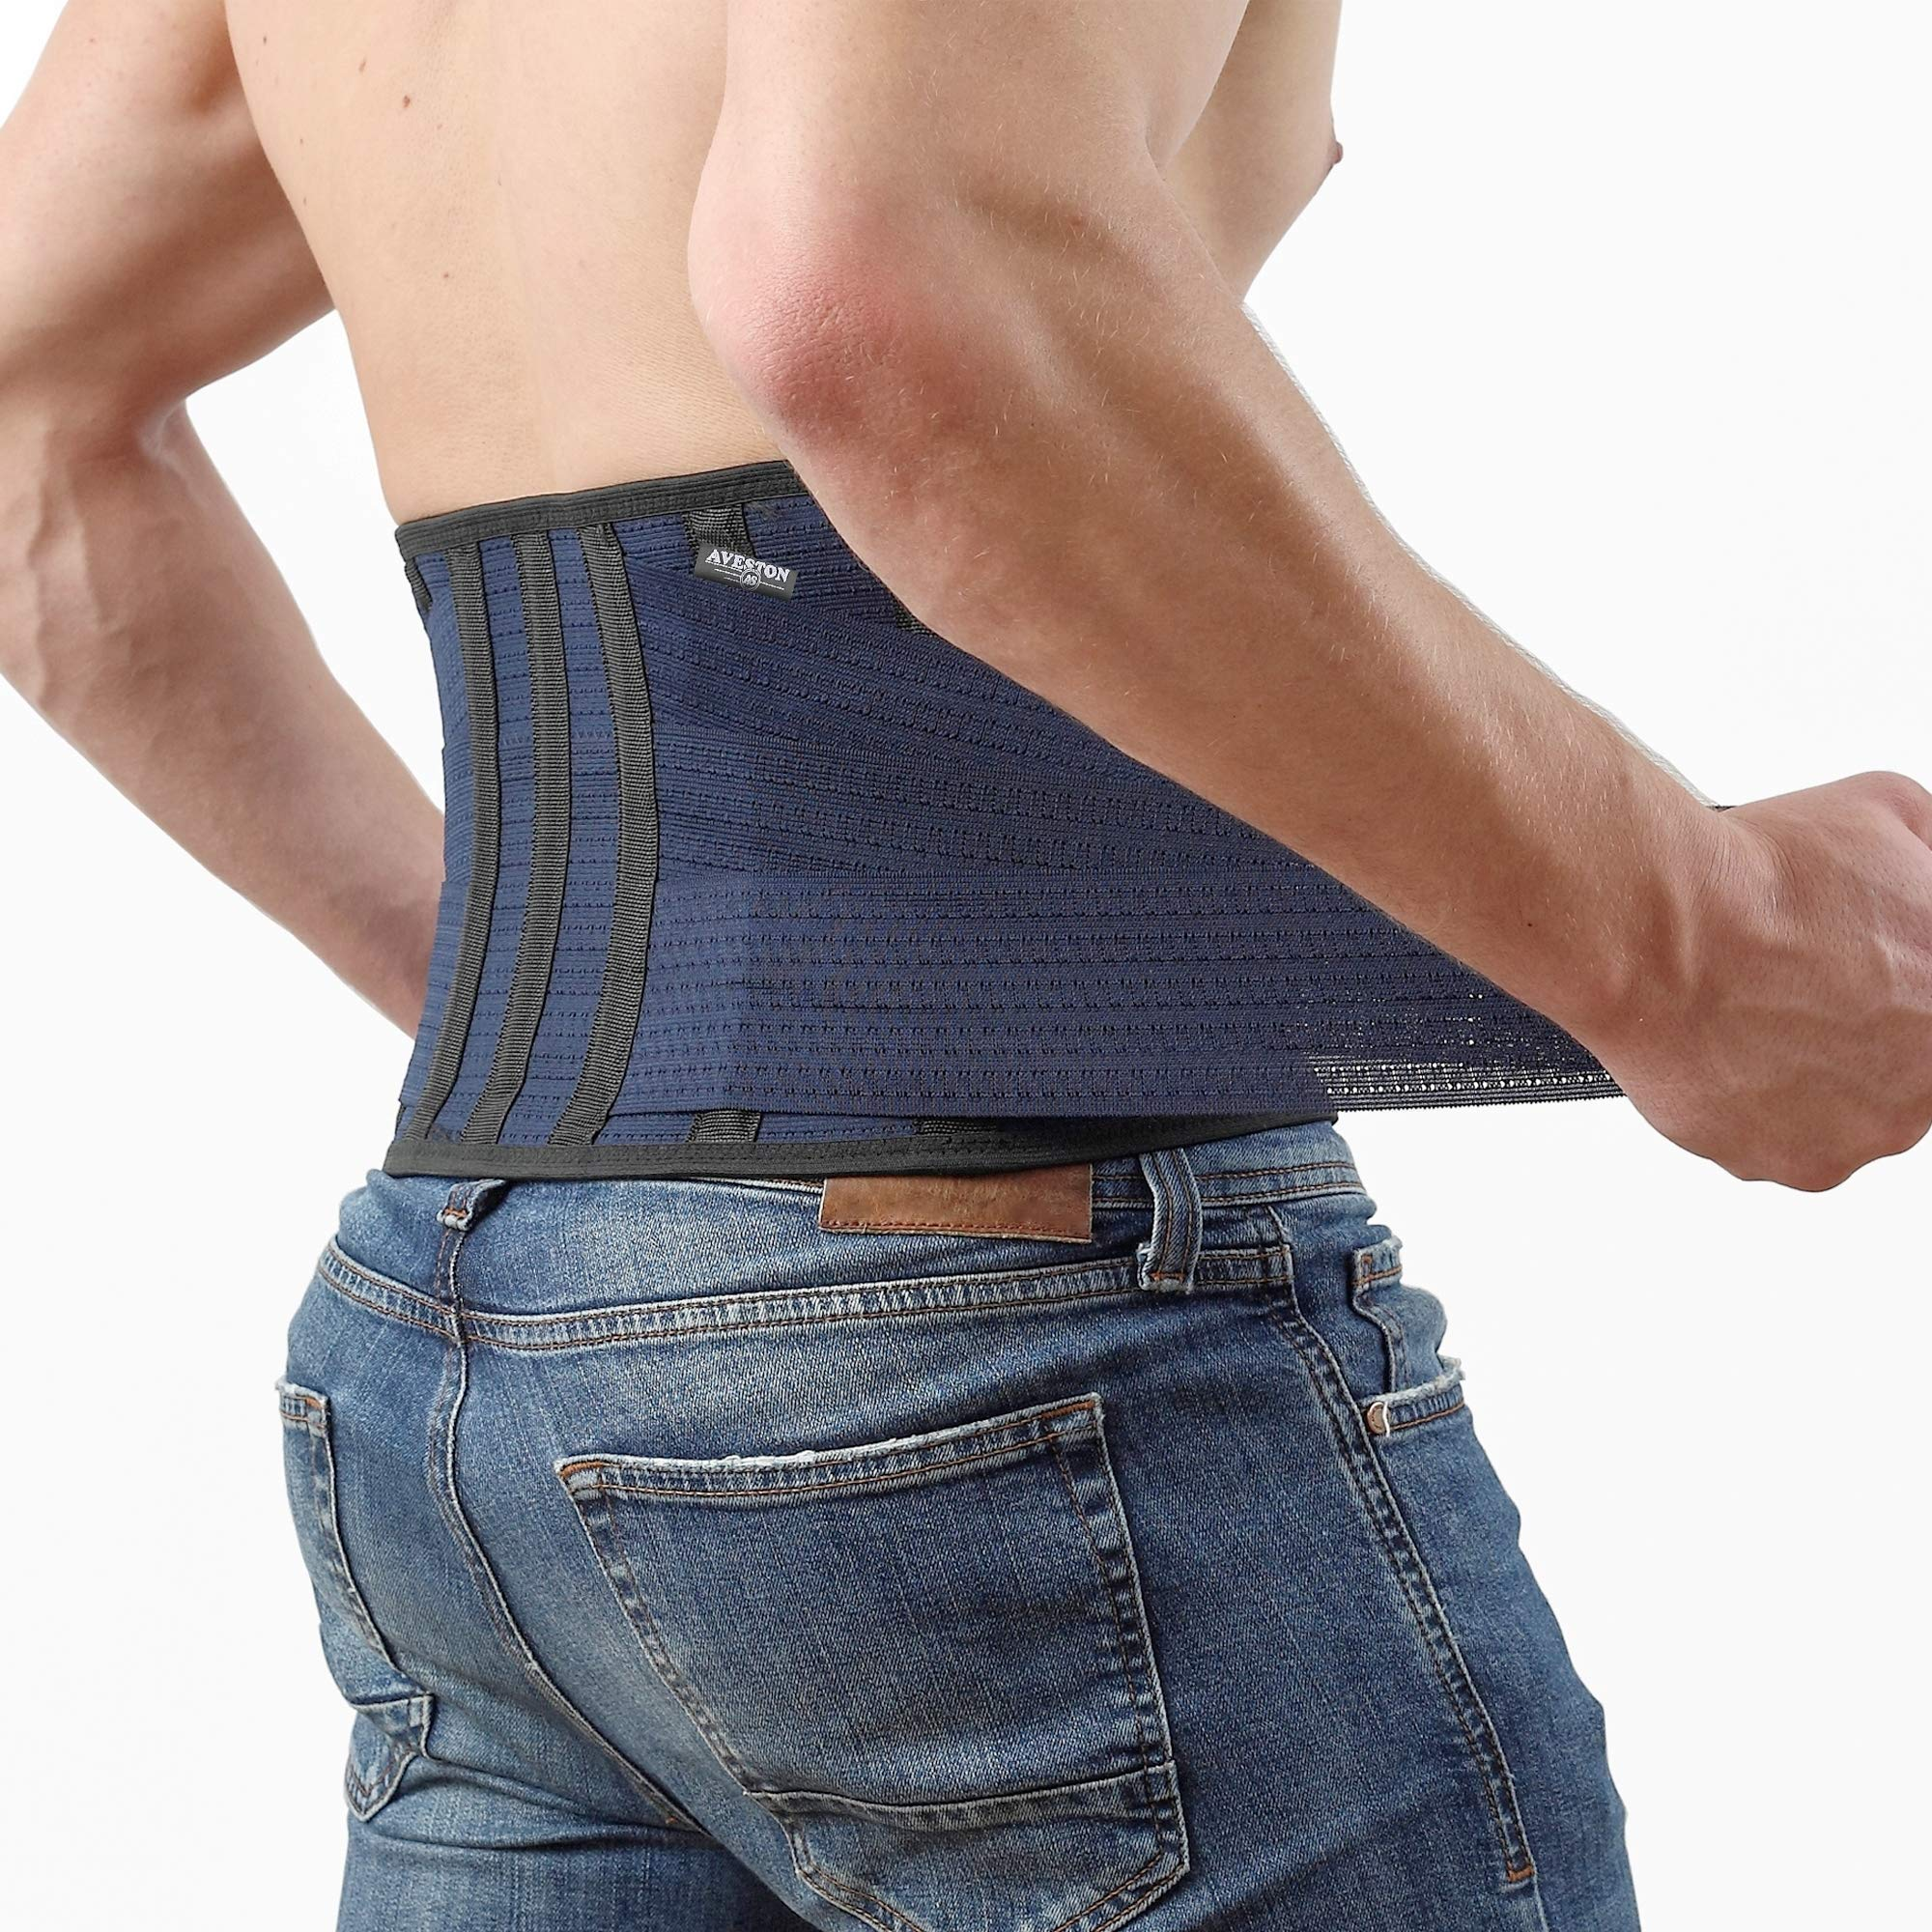 Breathable Back Support and Lumbar Lower Back Brace provides Back Pain Relief - Keep Your Spine Safe and Straight thanks to 6 Plastic ribs and 3 Adjustable Belt - Medium size